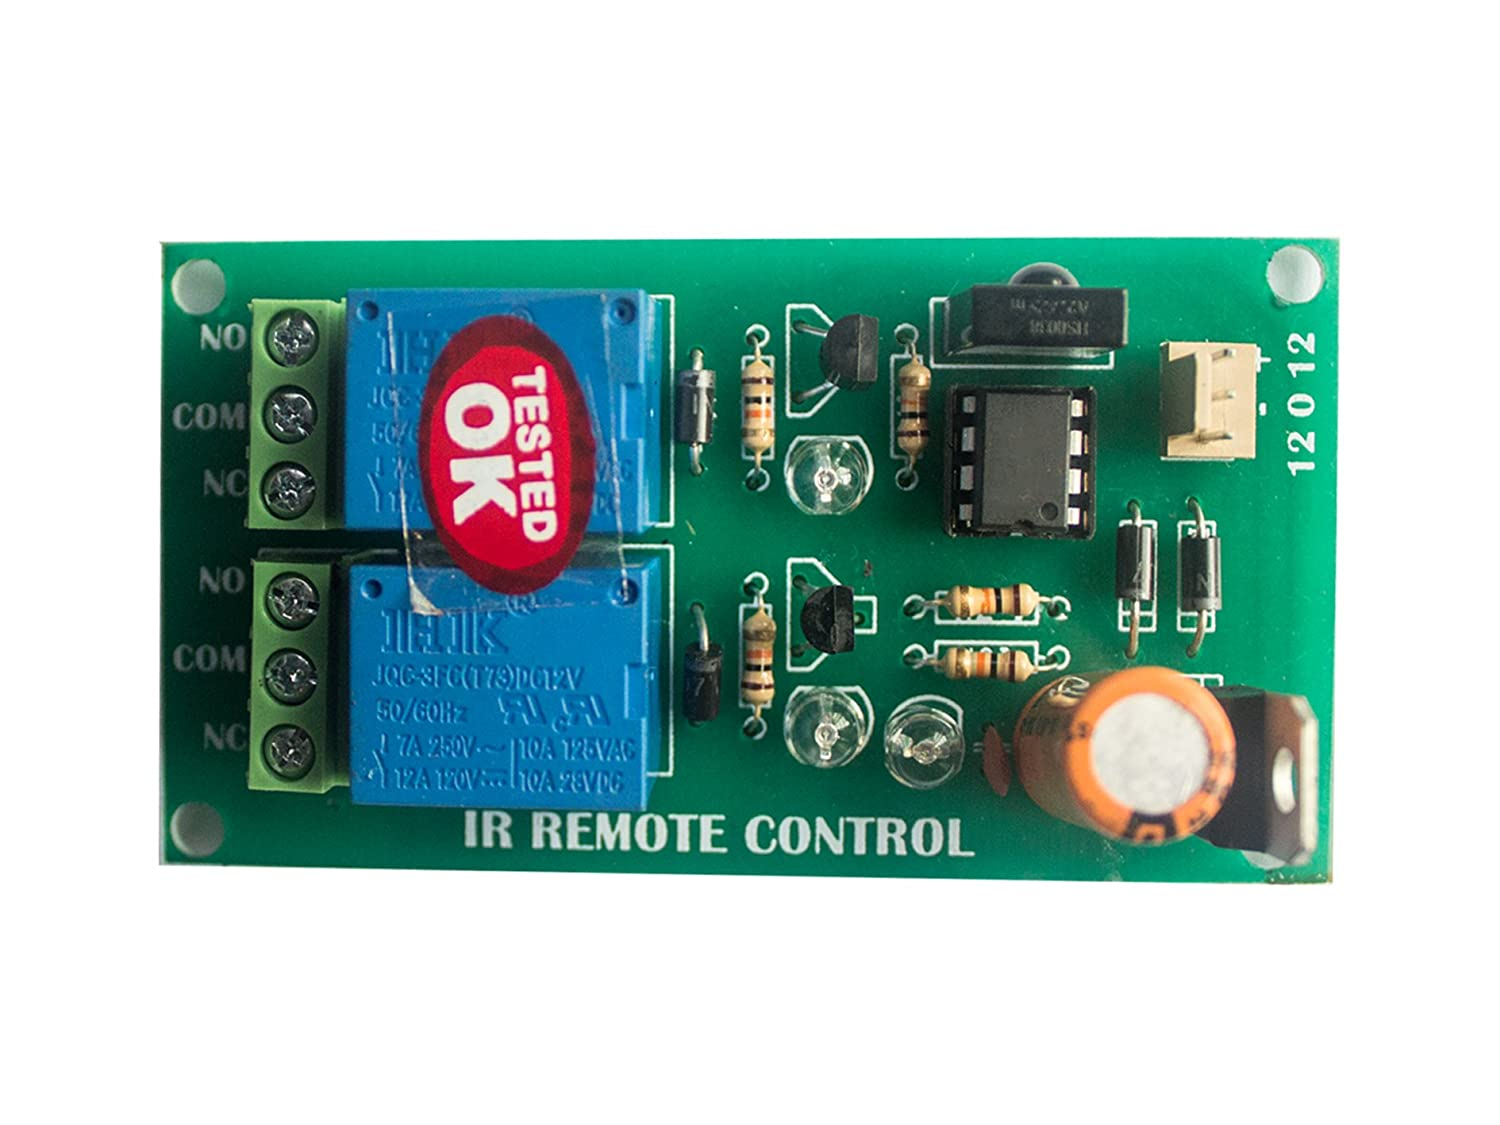 Buy Skytech Wireless Infrared Ir Remote Control 2 Channel Board Home Transmitter Integrated Circuit Industrial Automation Online At Low Prices In India